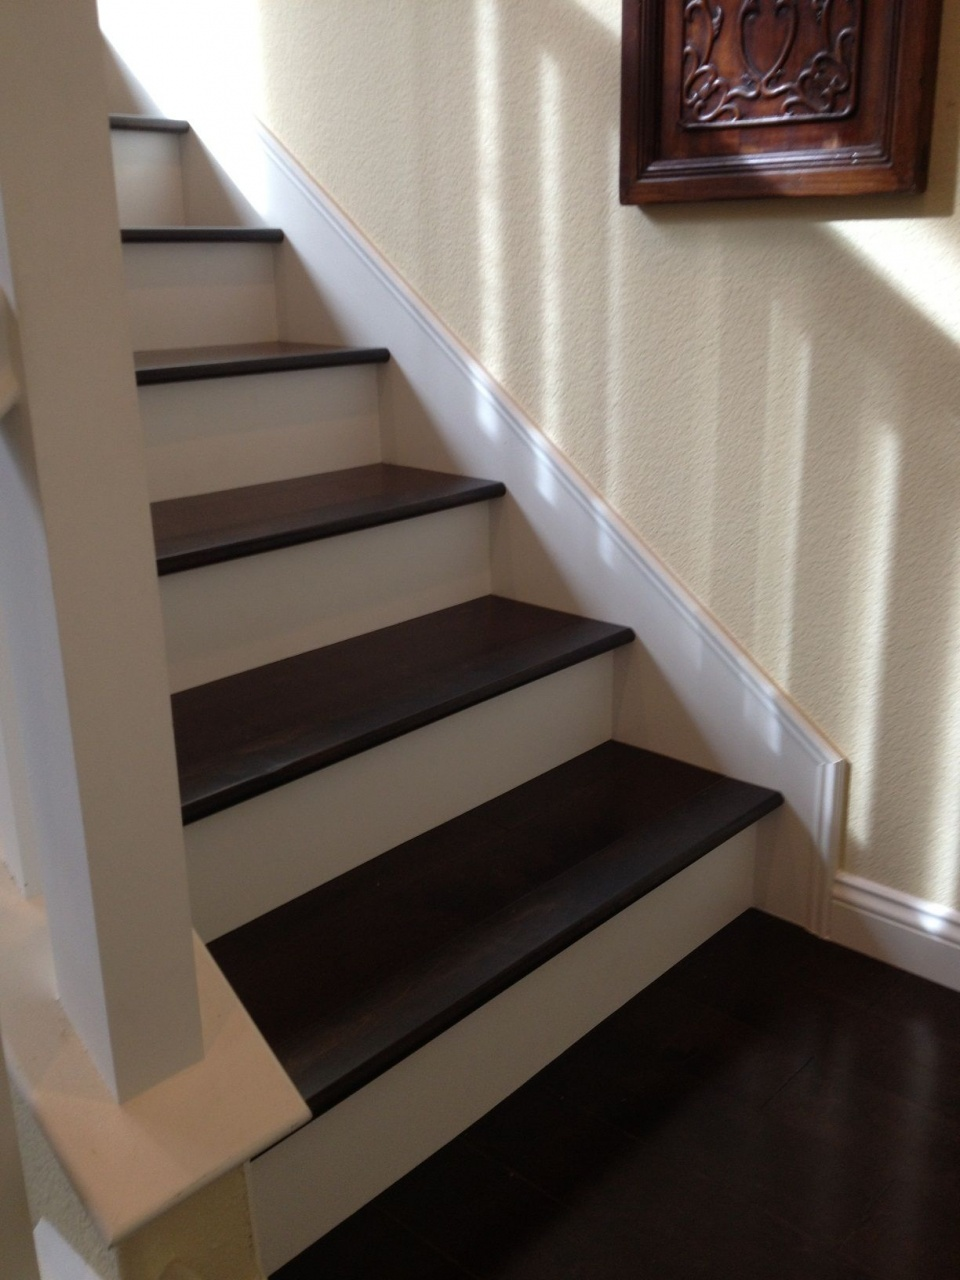 Image of: Vinyl Stairs Treads And Risers I M Going To Do White Risers Like These On My Staircase I Equalmarriagefl Vinyl From Vinyl Stairs Treads And Risers Pictures